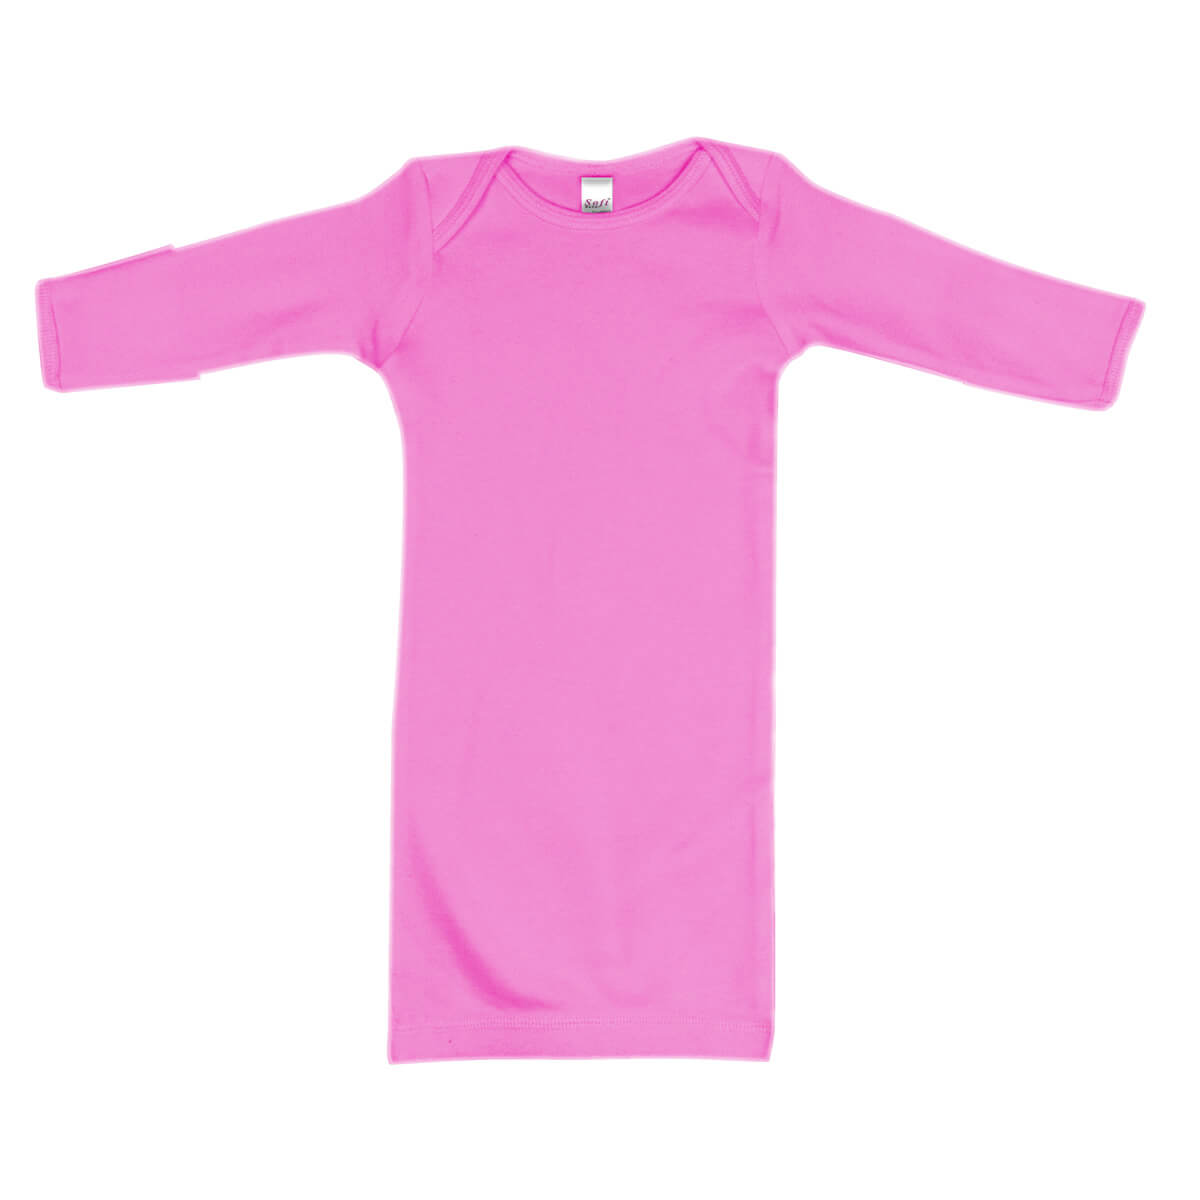 e1ab0126ce Wholesale Blank Layette Gowns - 100% Satisfaction Guaranteed